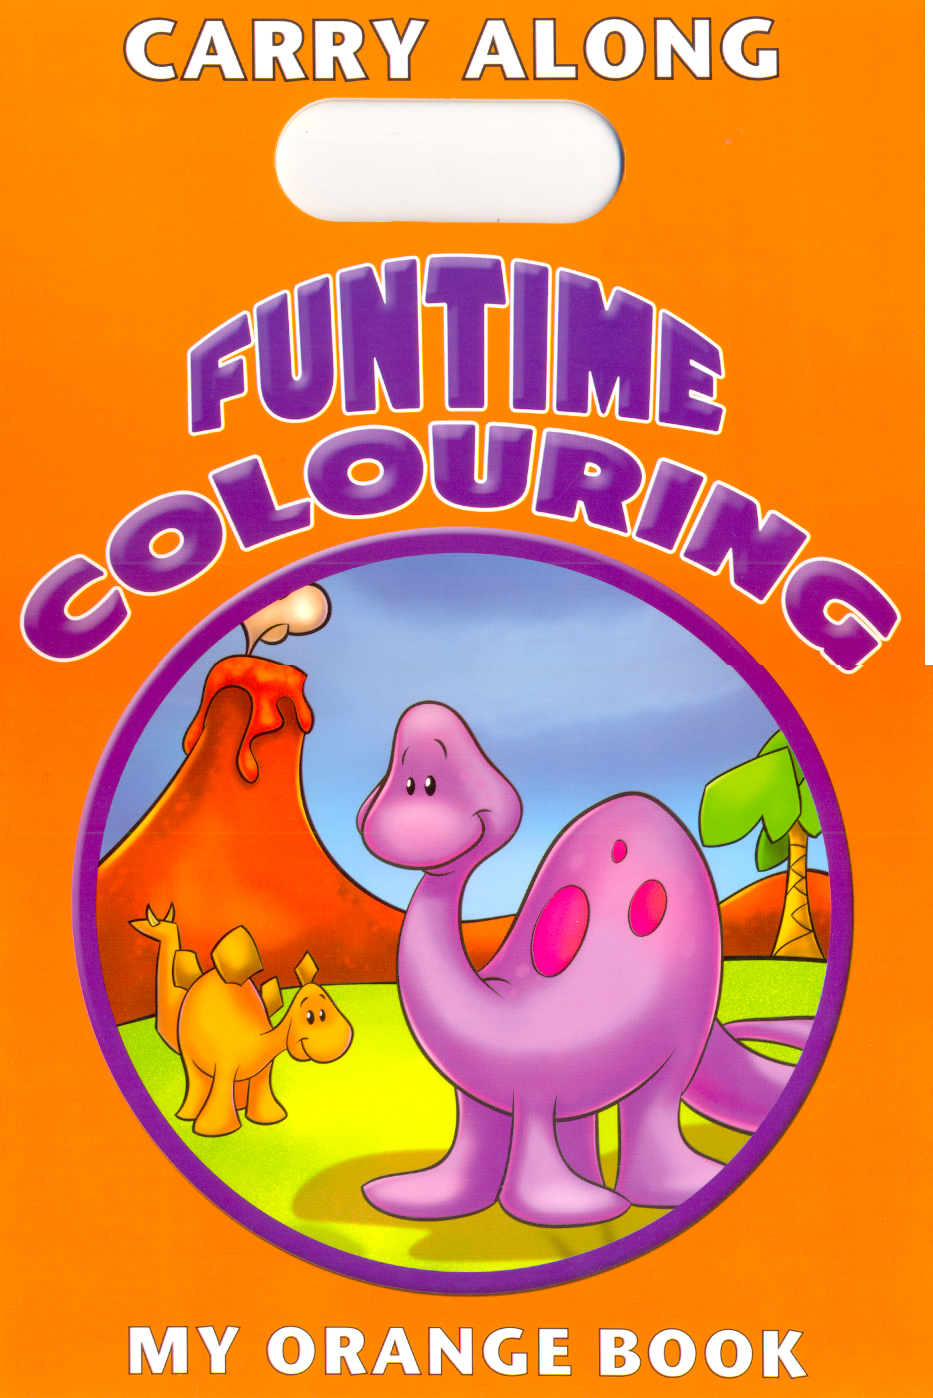 Carry Along Funtime Colouring - My Orange Book